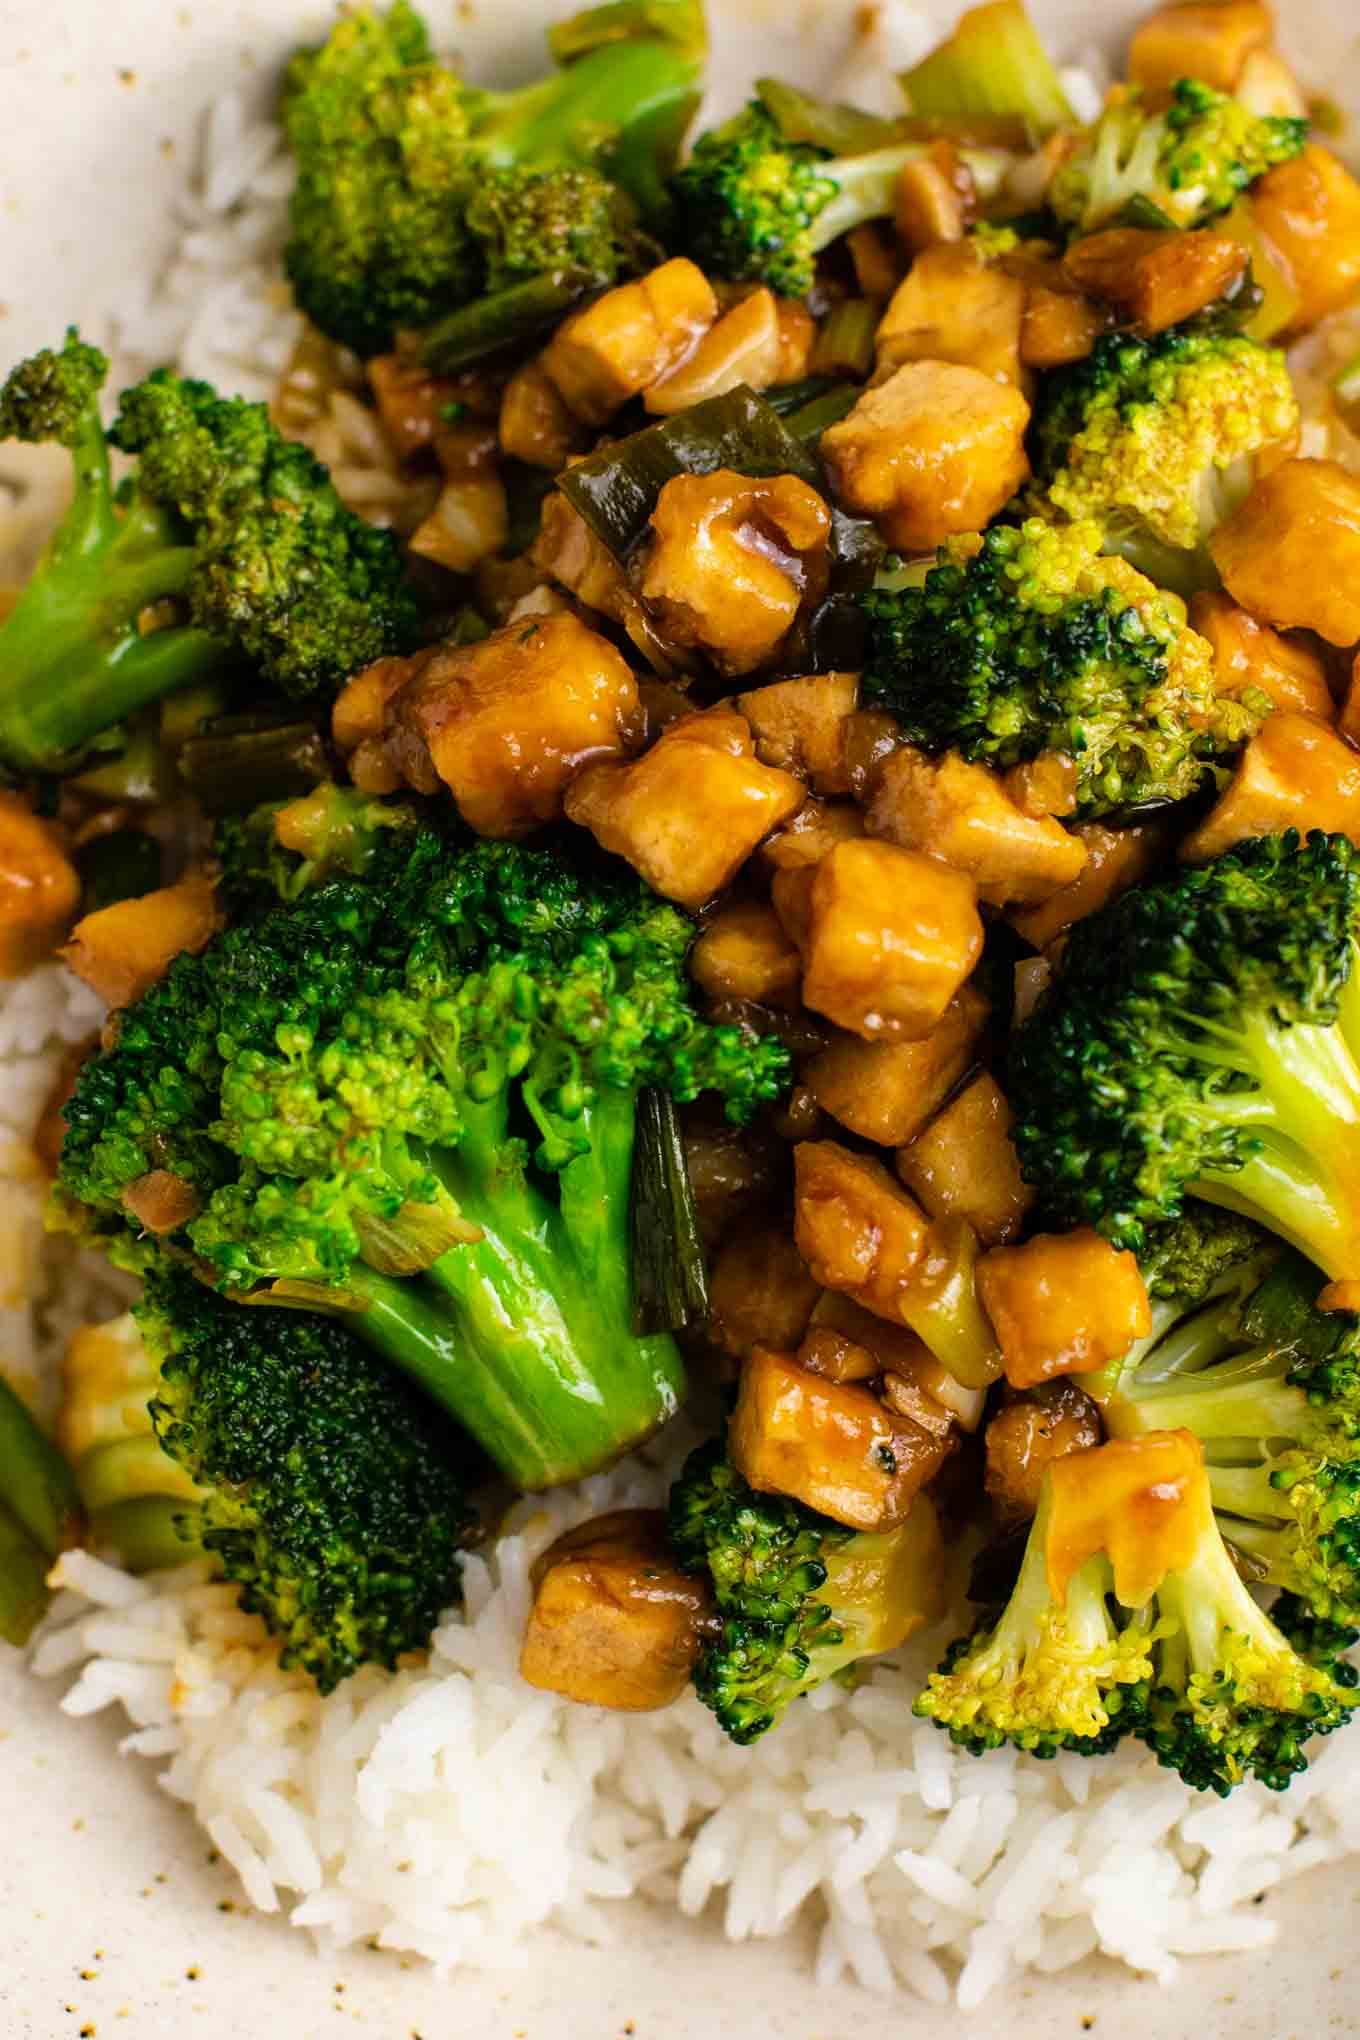 tofu stir fry – so easy and tastes amazing! #broccoli #tofu #stirfry #stirfrysauce #vegan #dinner #dinnerrecipe #stirfryrecipe #tofubroccoli #garlictofu